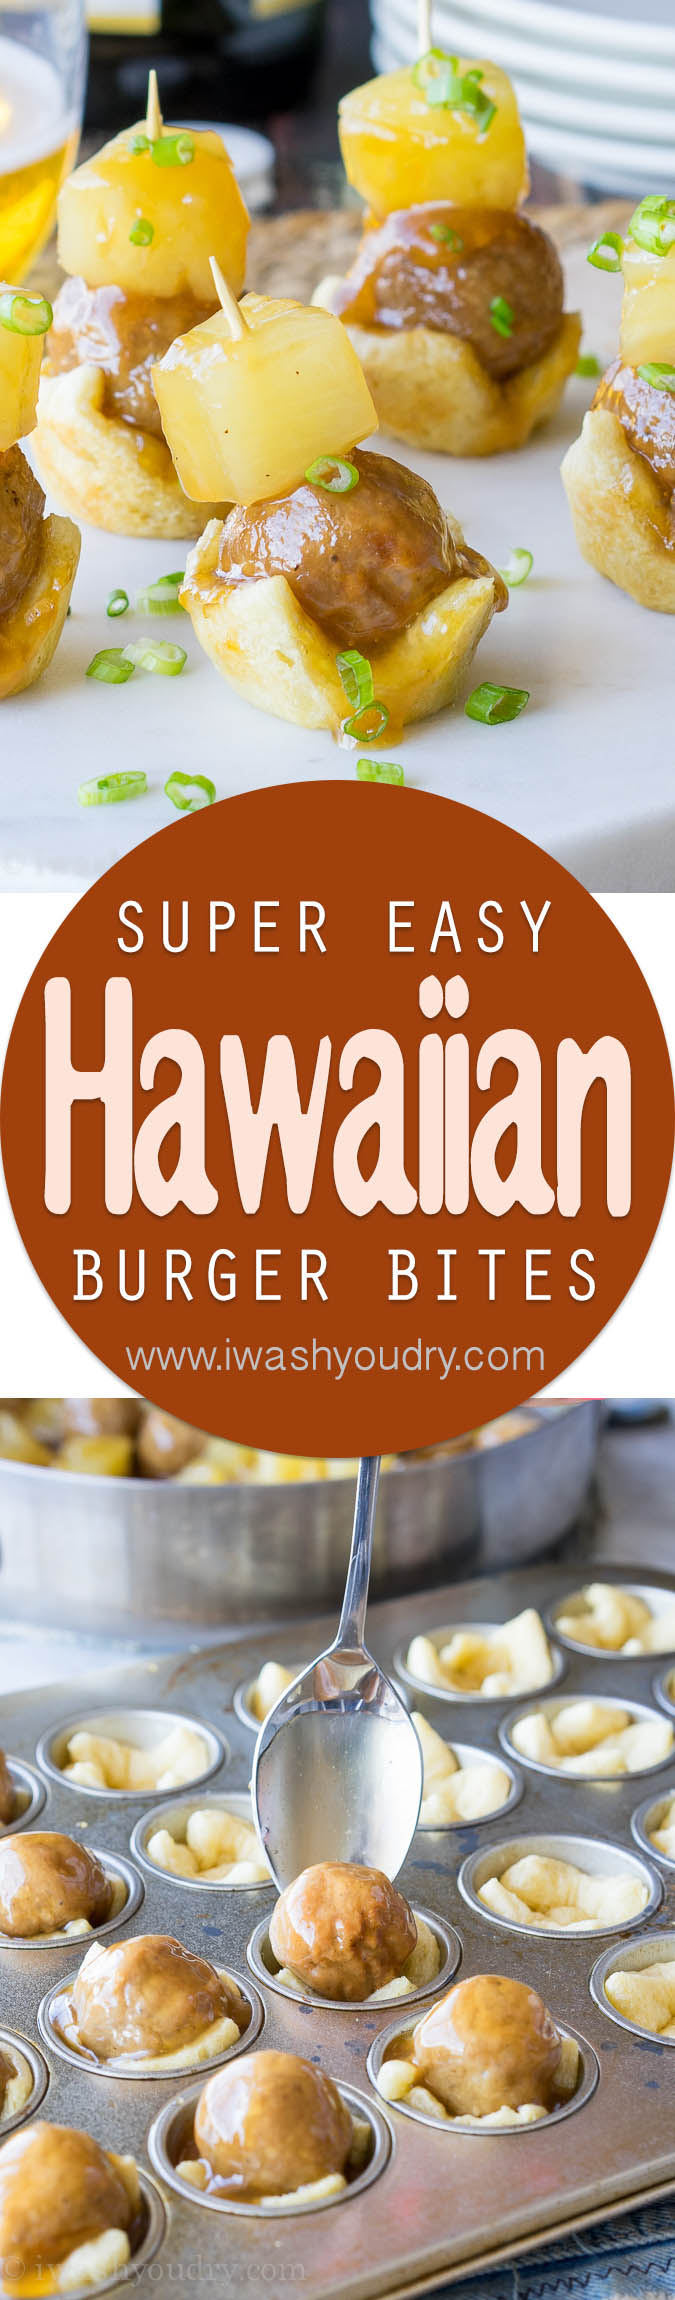 Hawaiian Burger Bites | I Wash You Dry